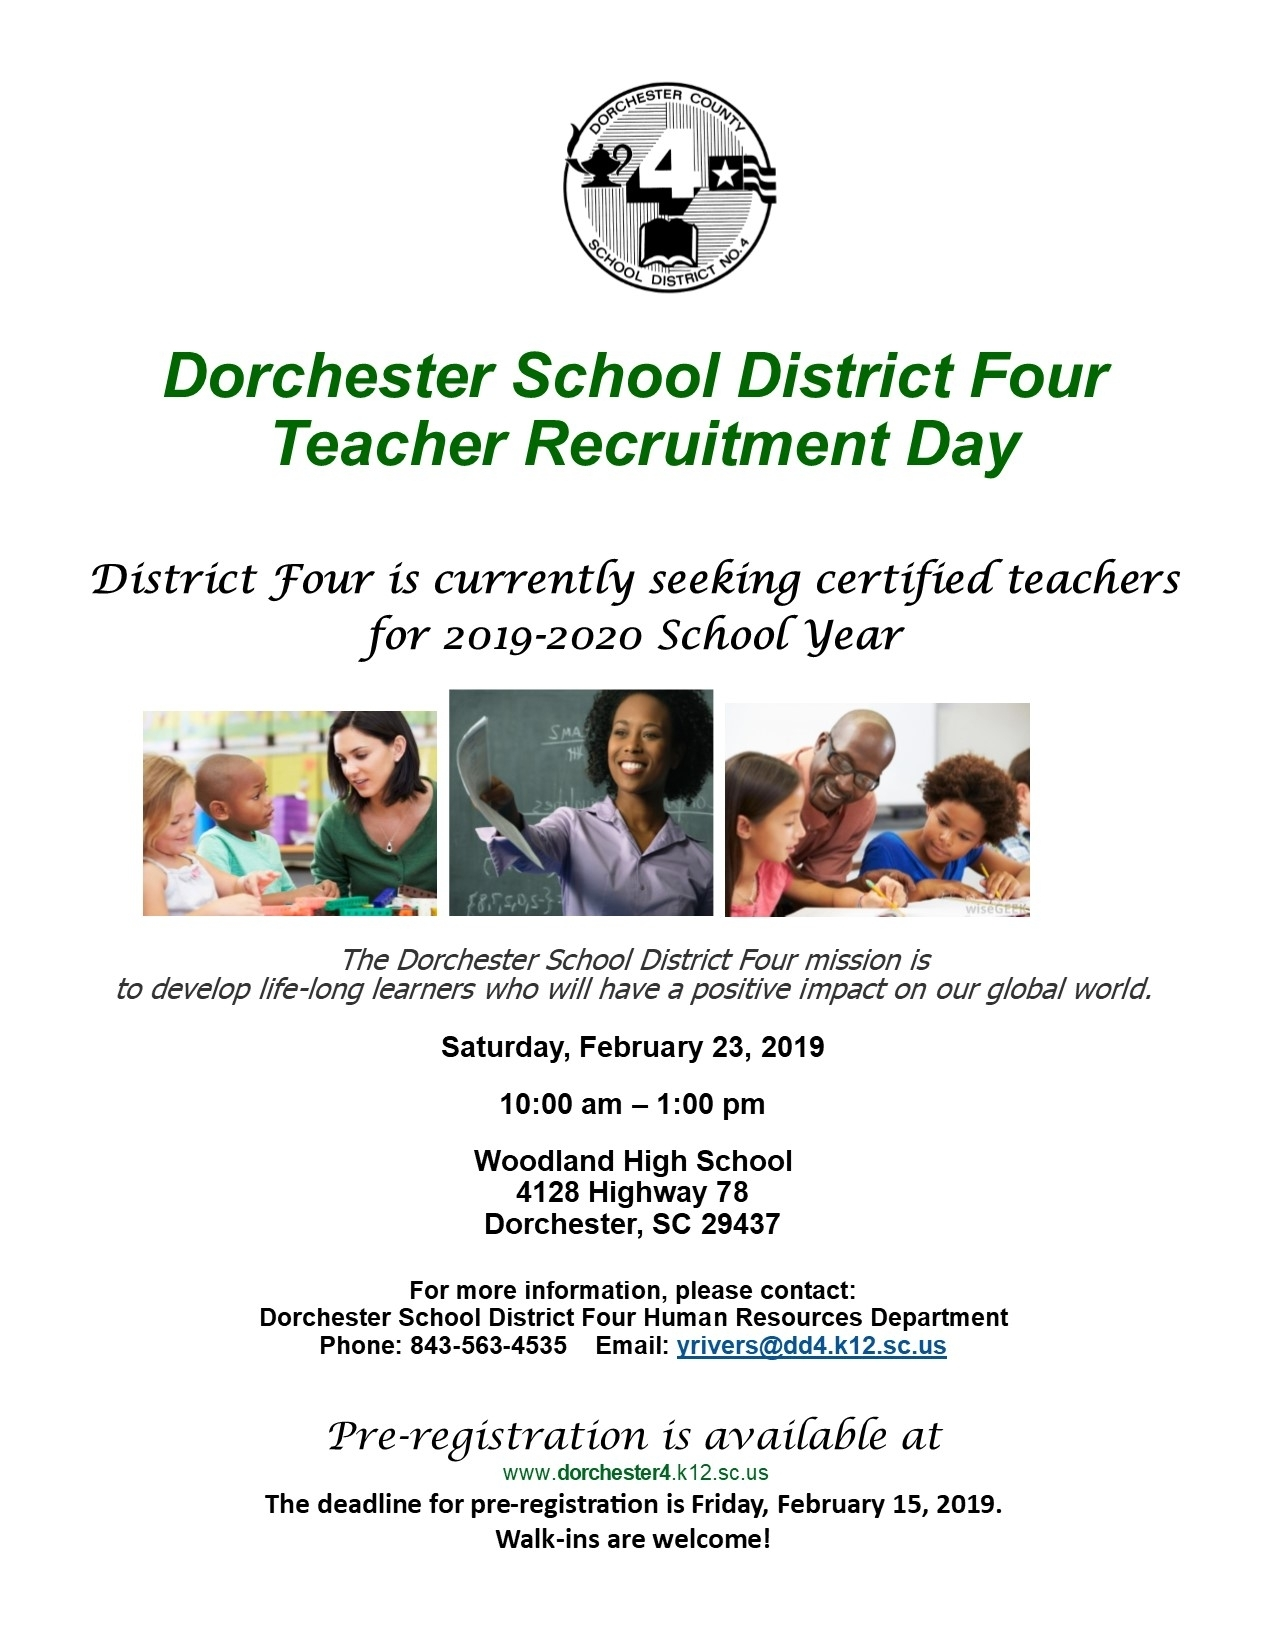 Human Resources | Dorchester County School District 4